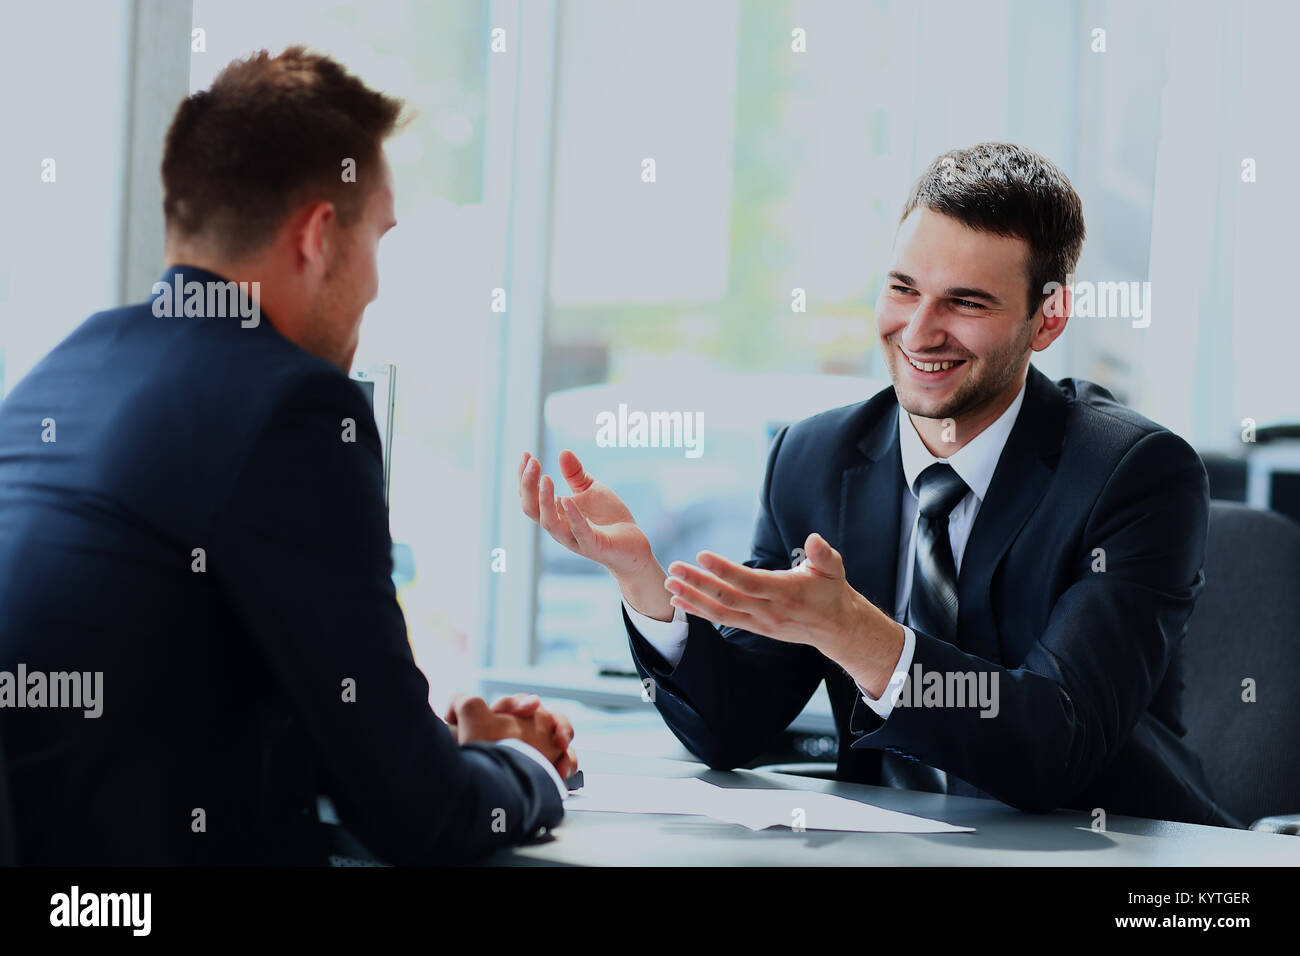 Business people speaking during interview in their office. - Stock Image